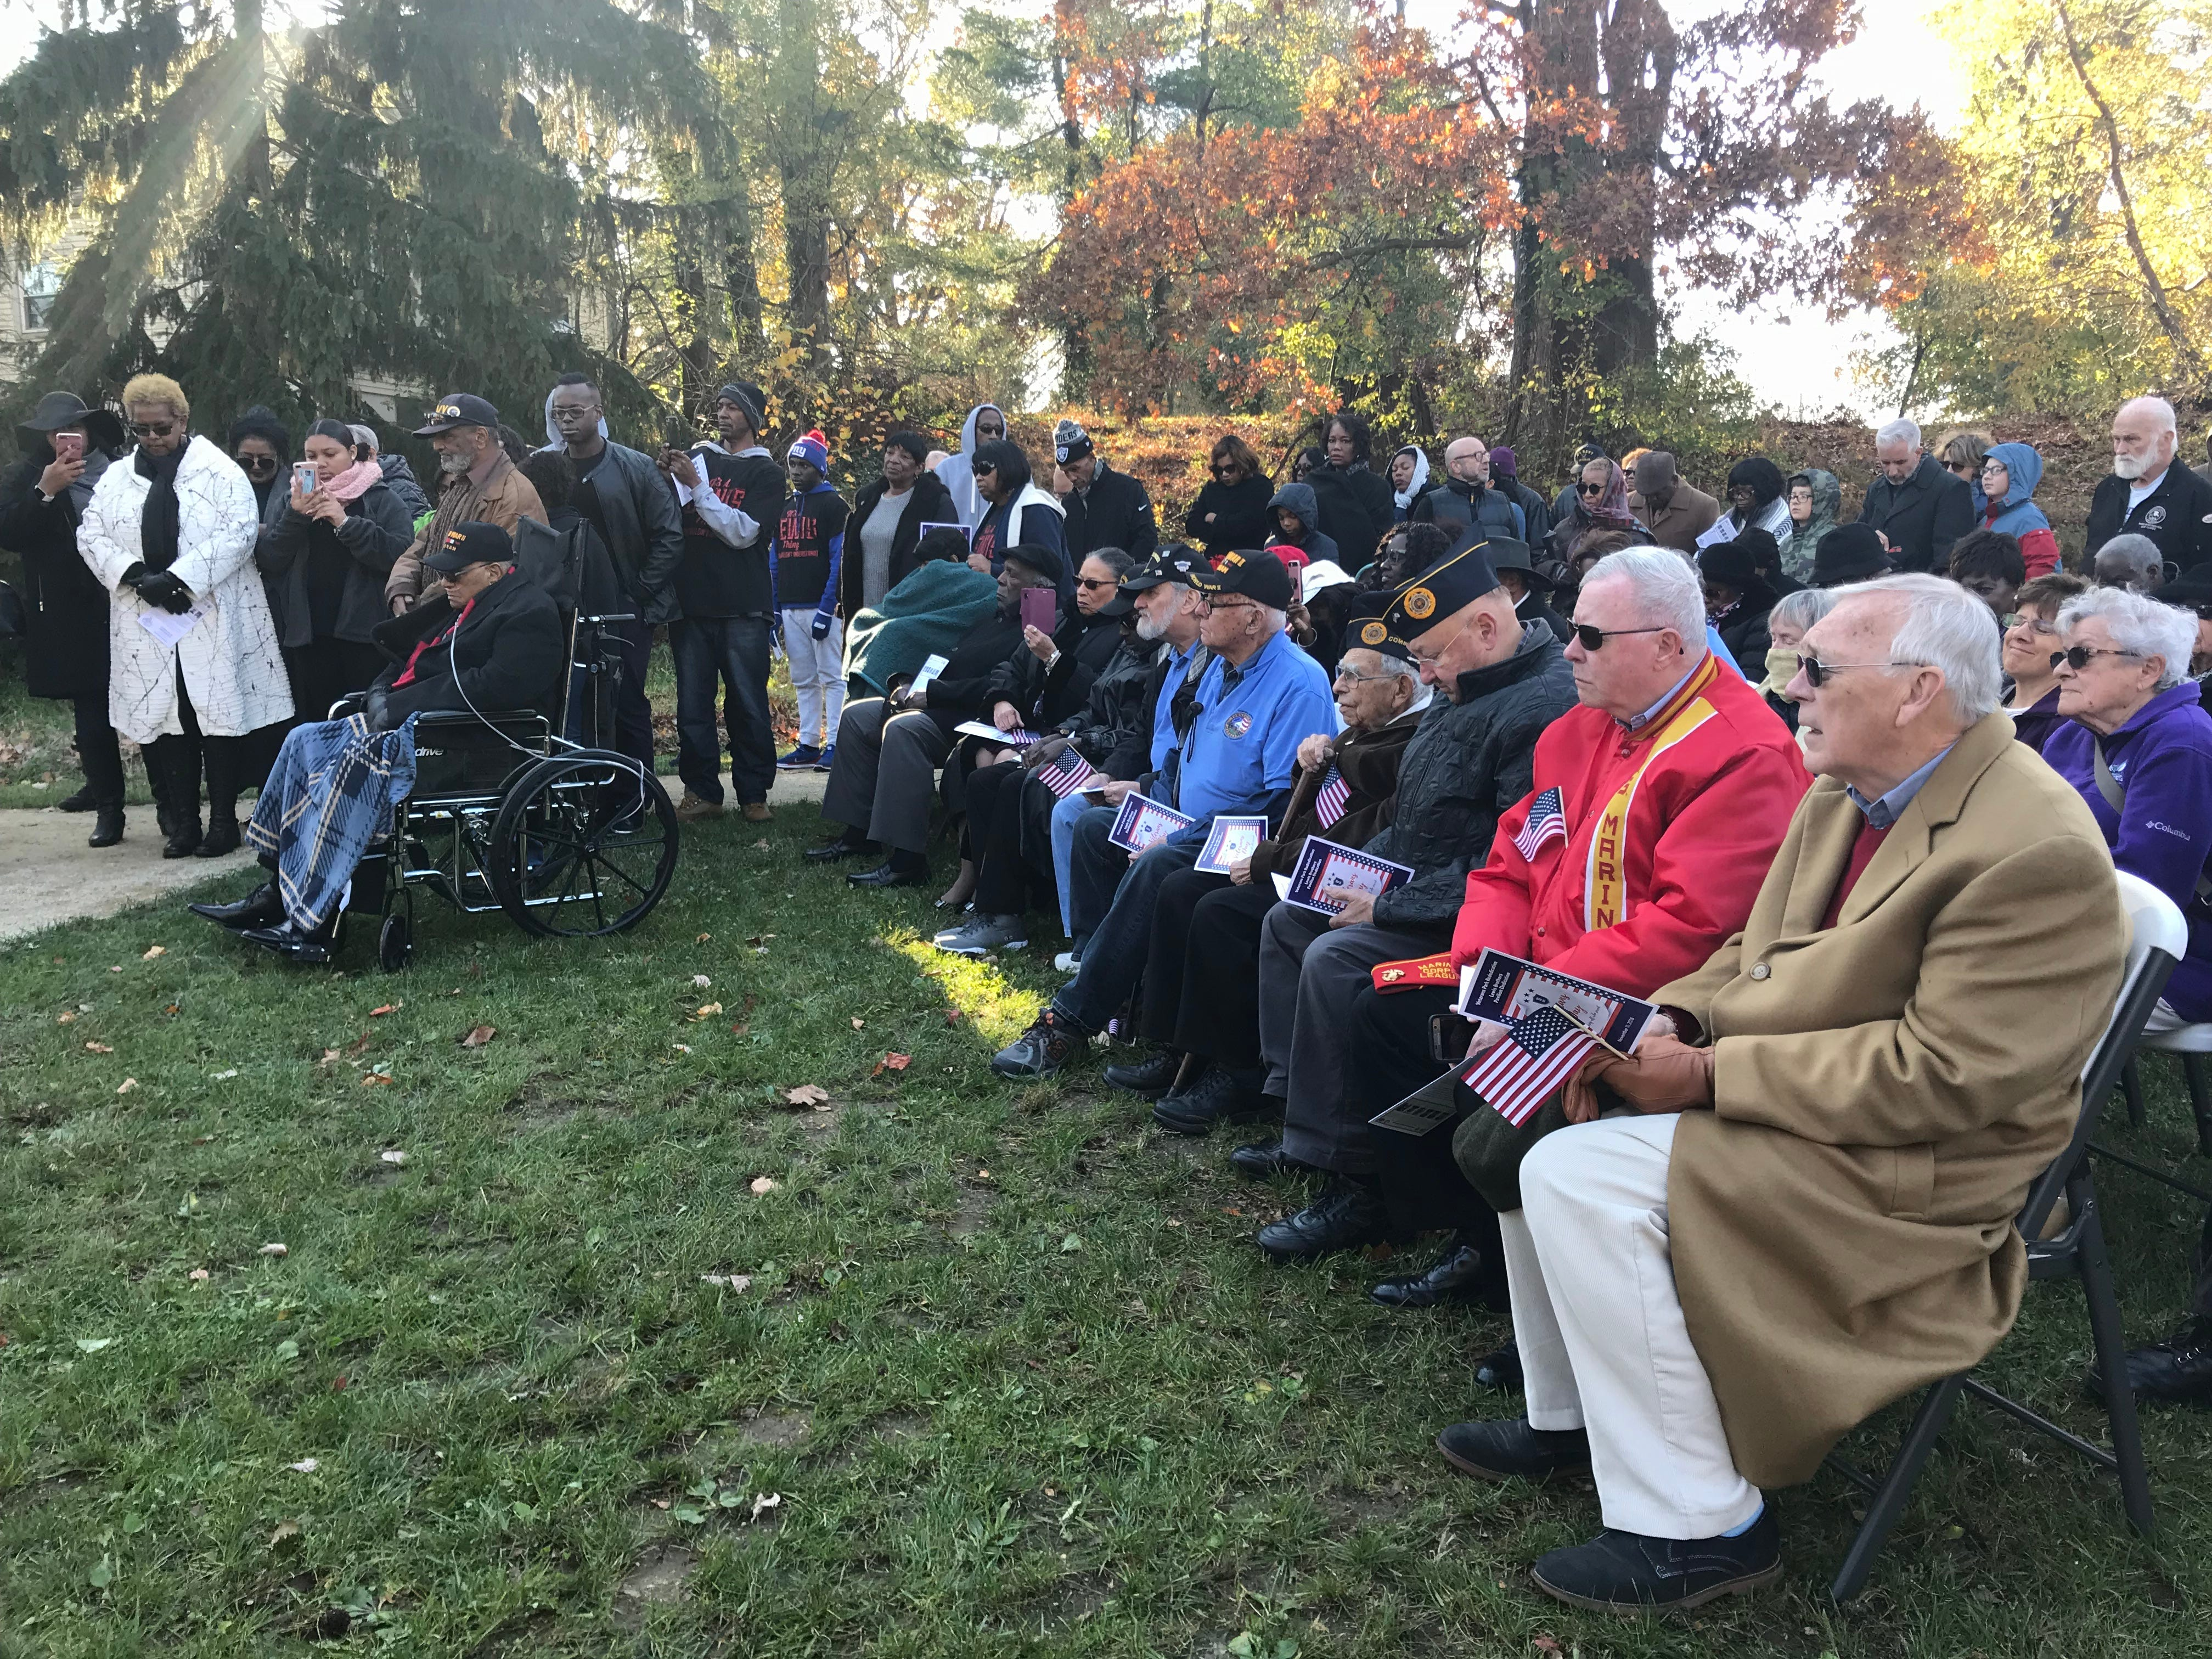 More than 100 people gathered on Nov. 11, 2018, for the re-dedication ceremony at Freehold Borough's Veterans Park. The ceremony commemorated the six Lewis brothers from Freehold Borough who served in World War II.